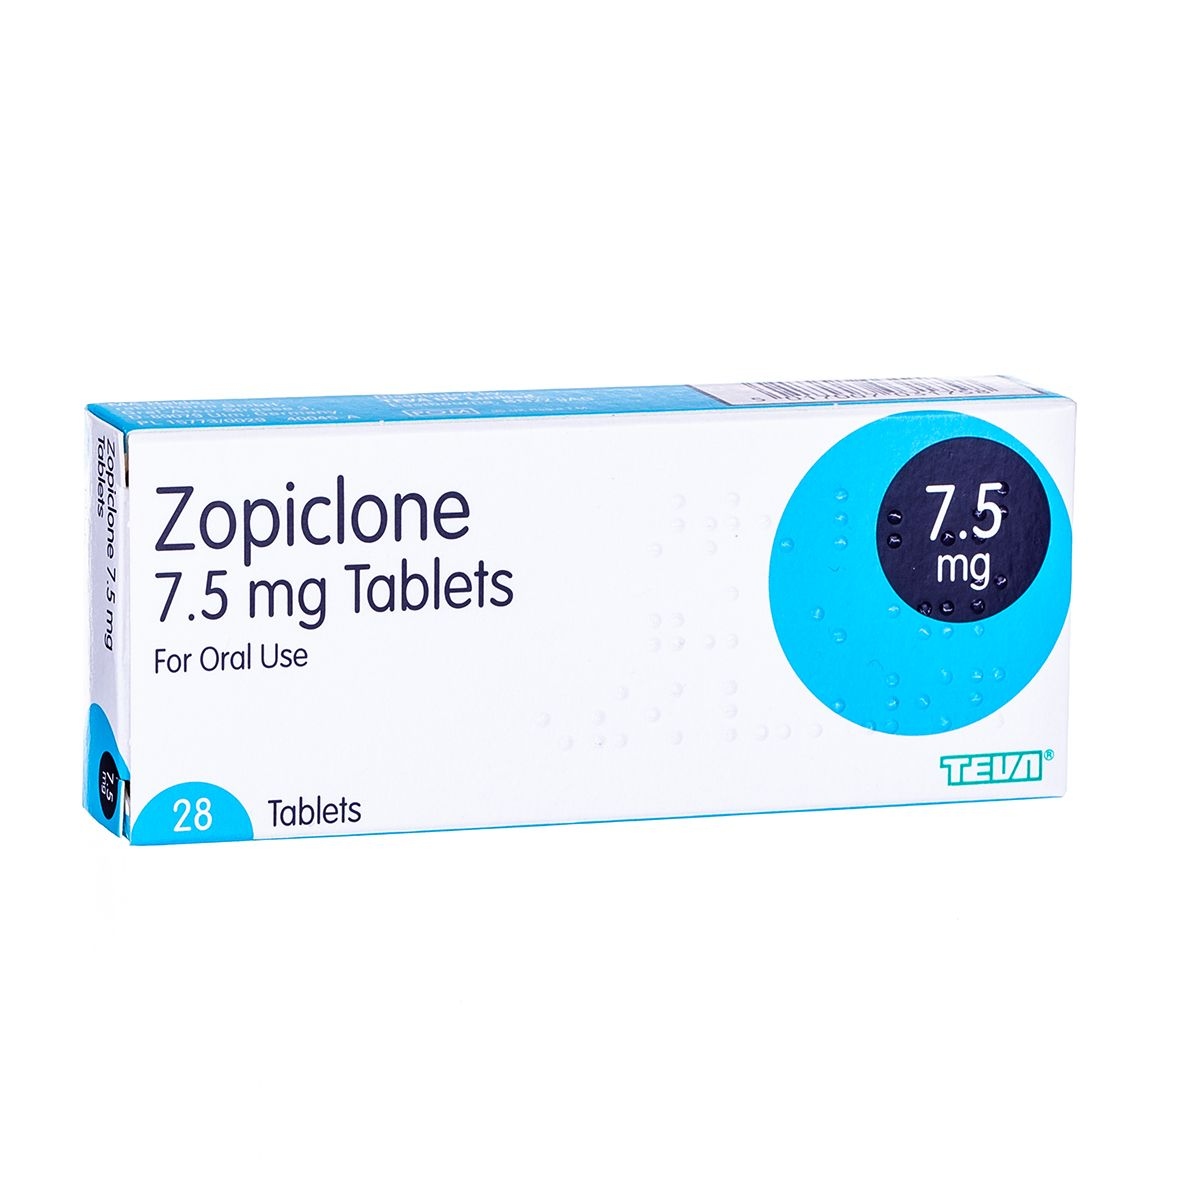 What is Zopiclone